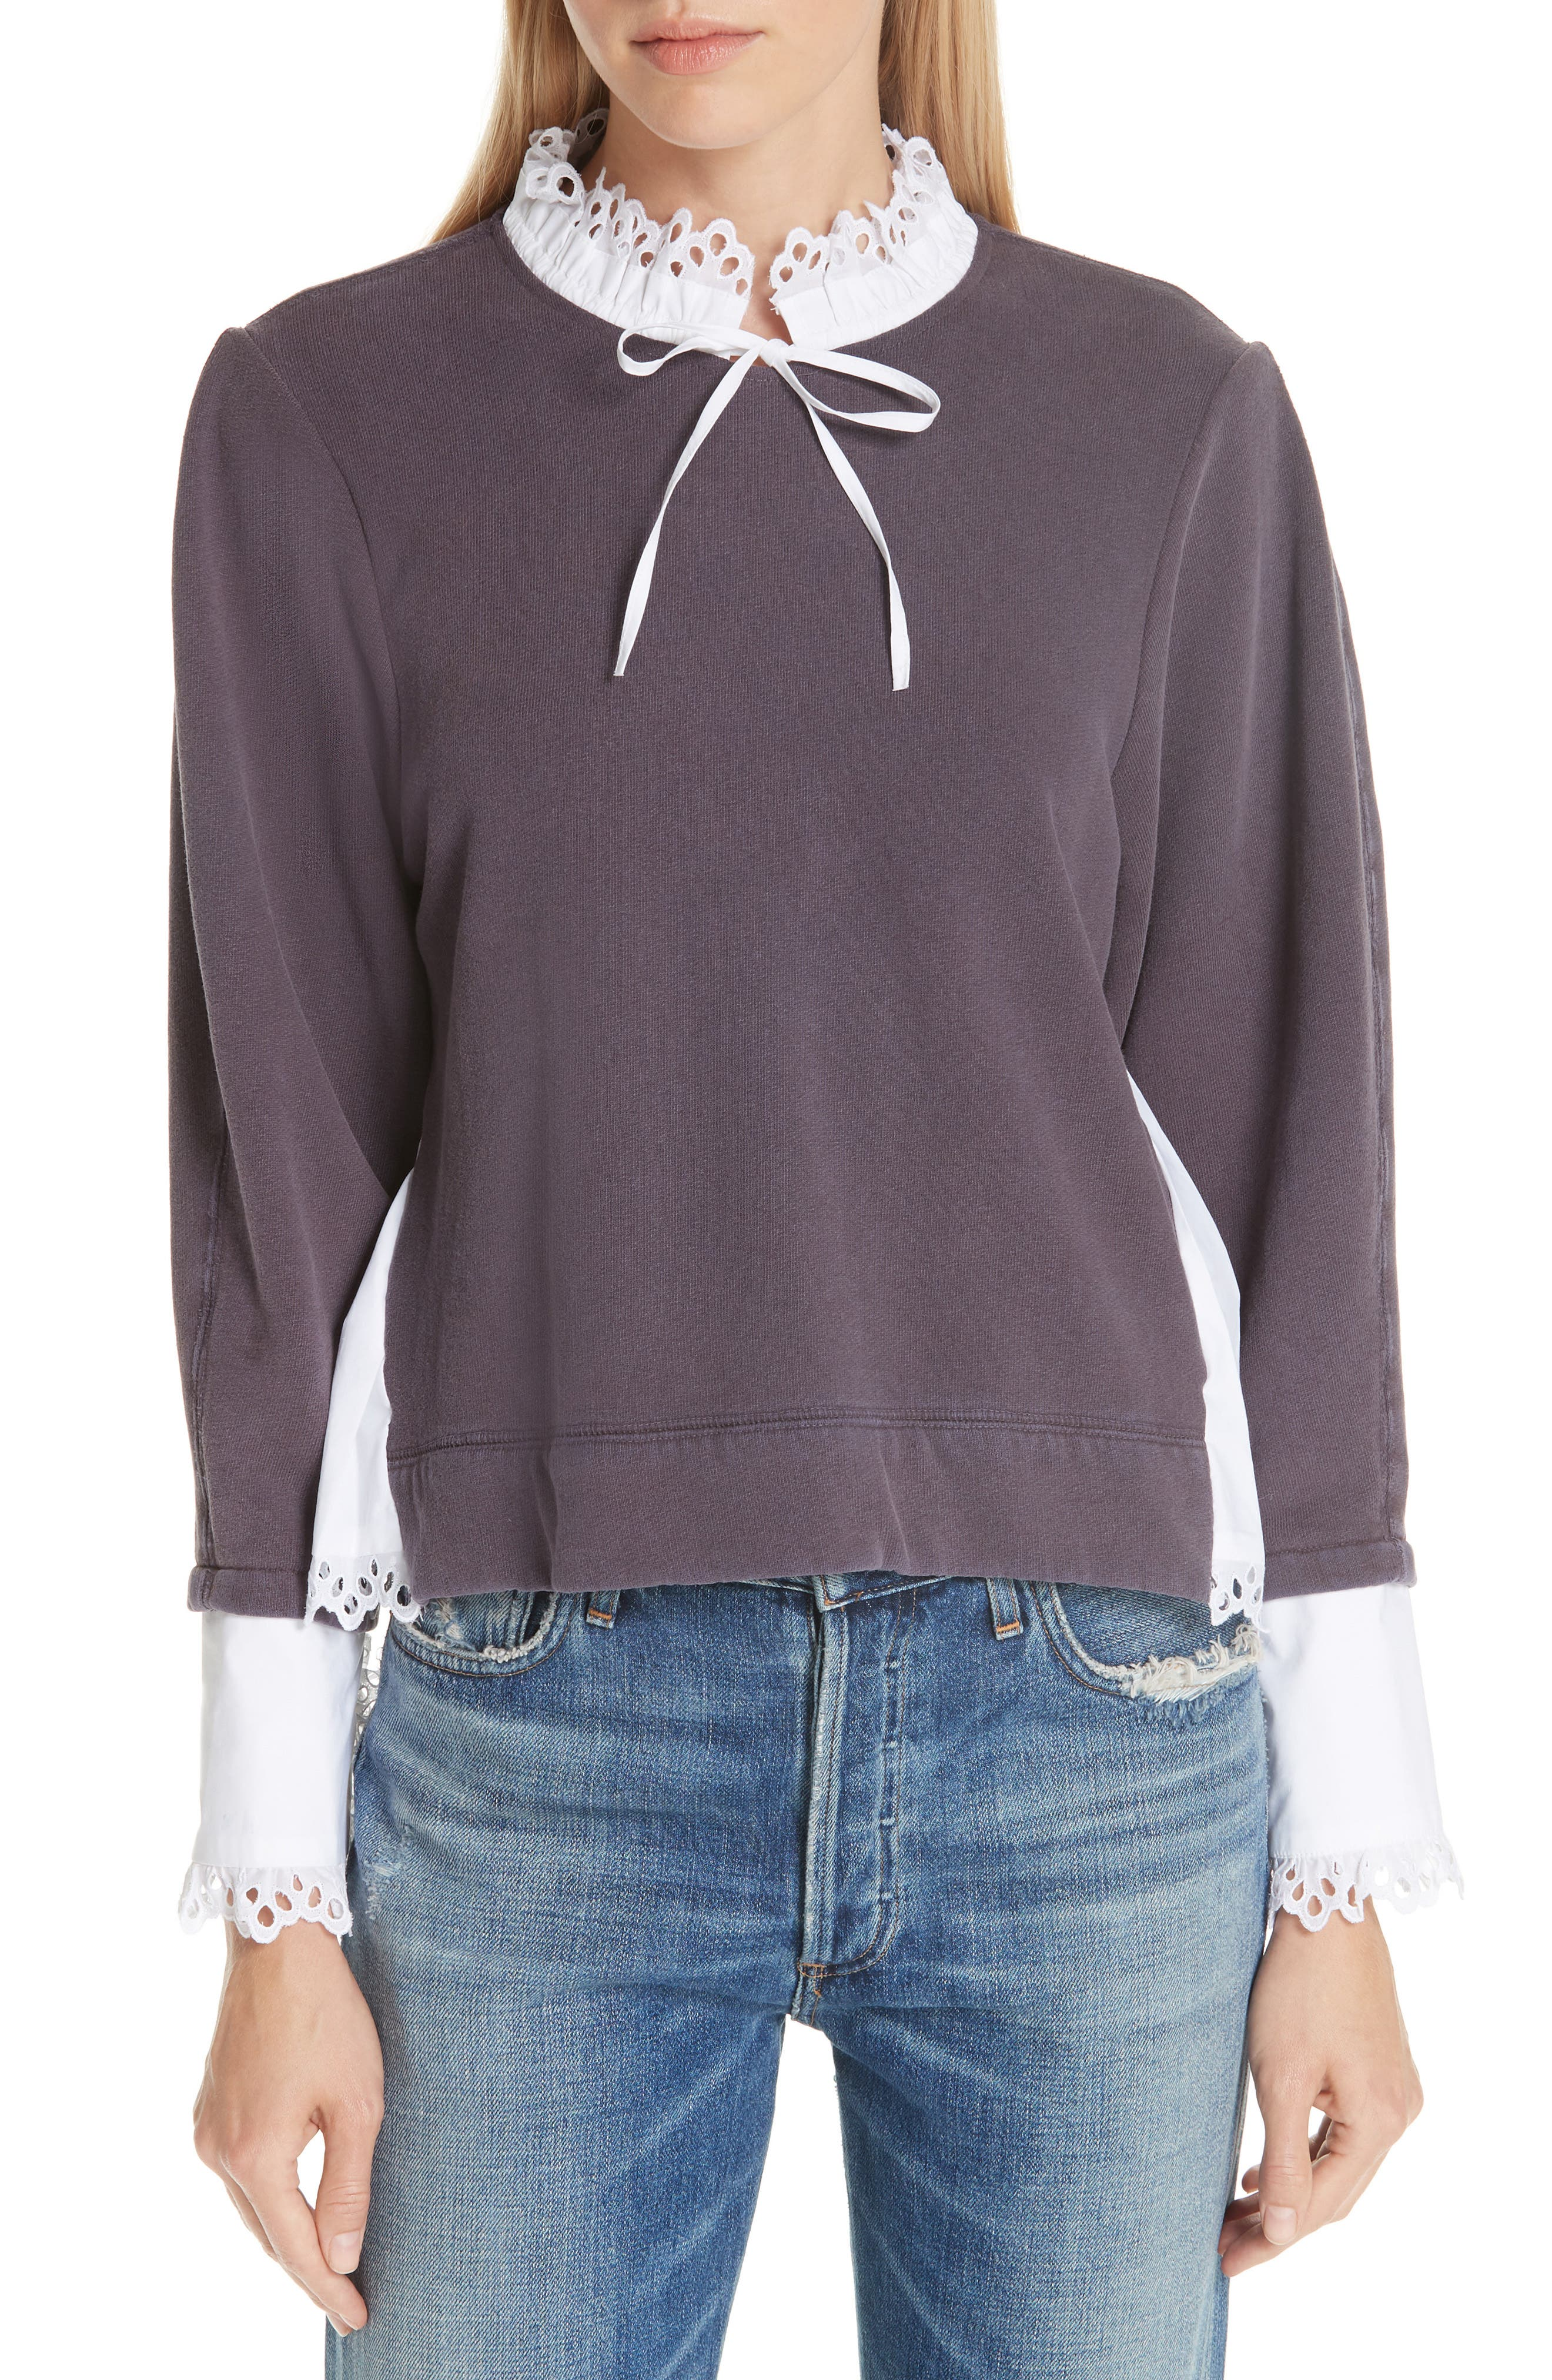 Eyelet Contrast Sweatshirt,                         Main,                         color, GREY/ WHITE COMBO